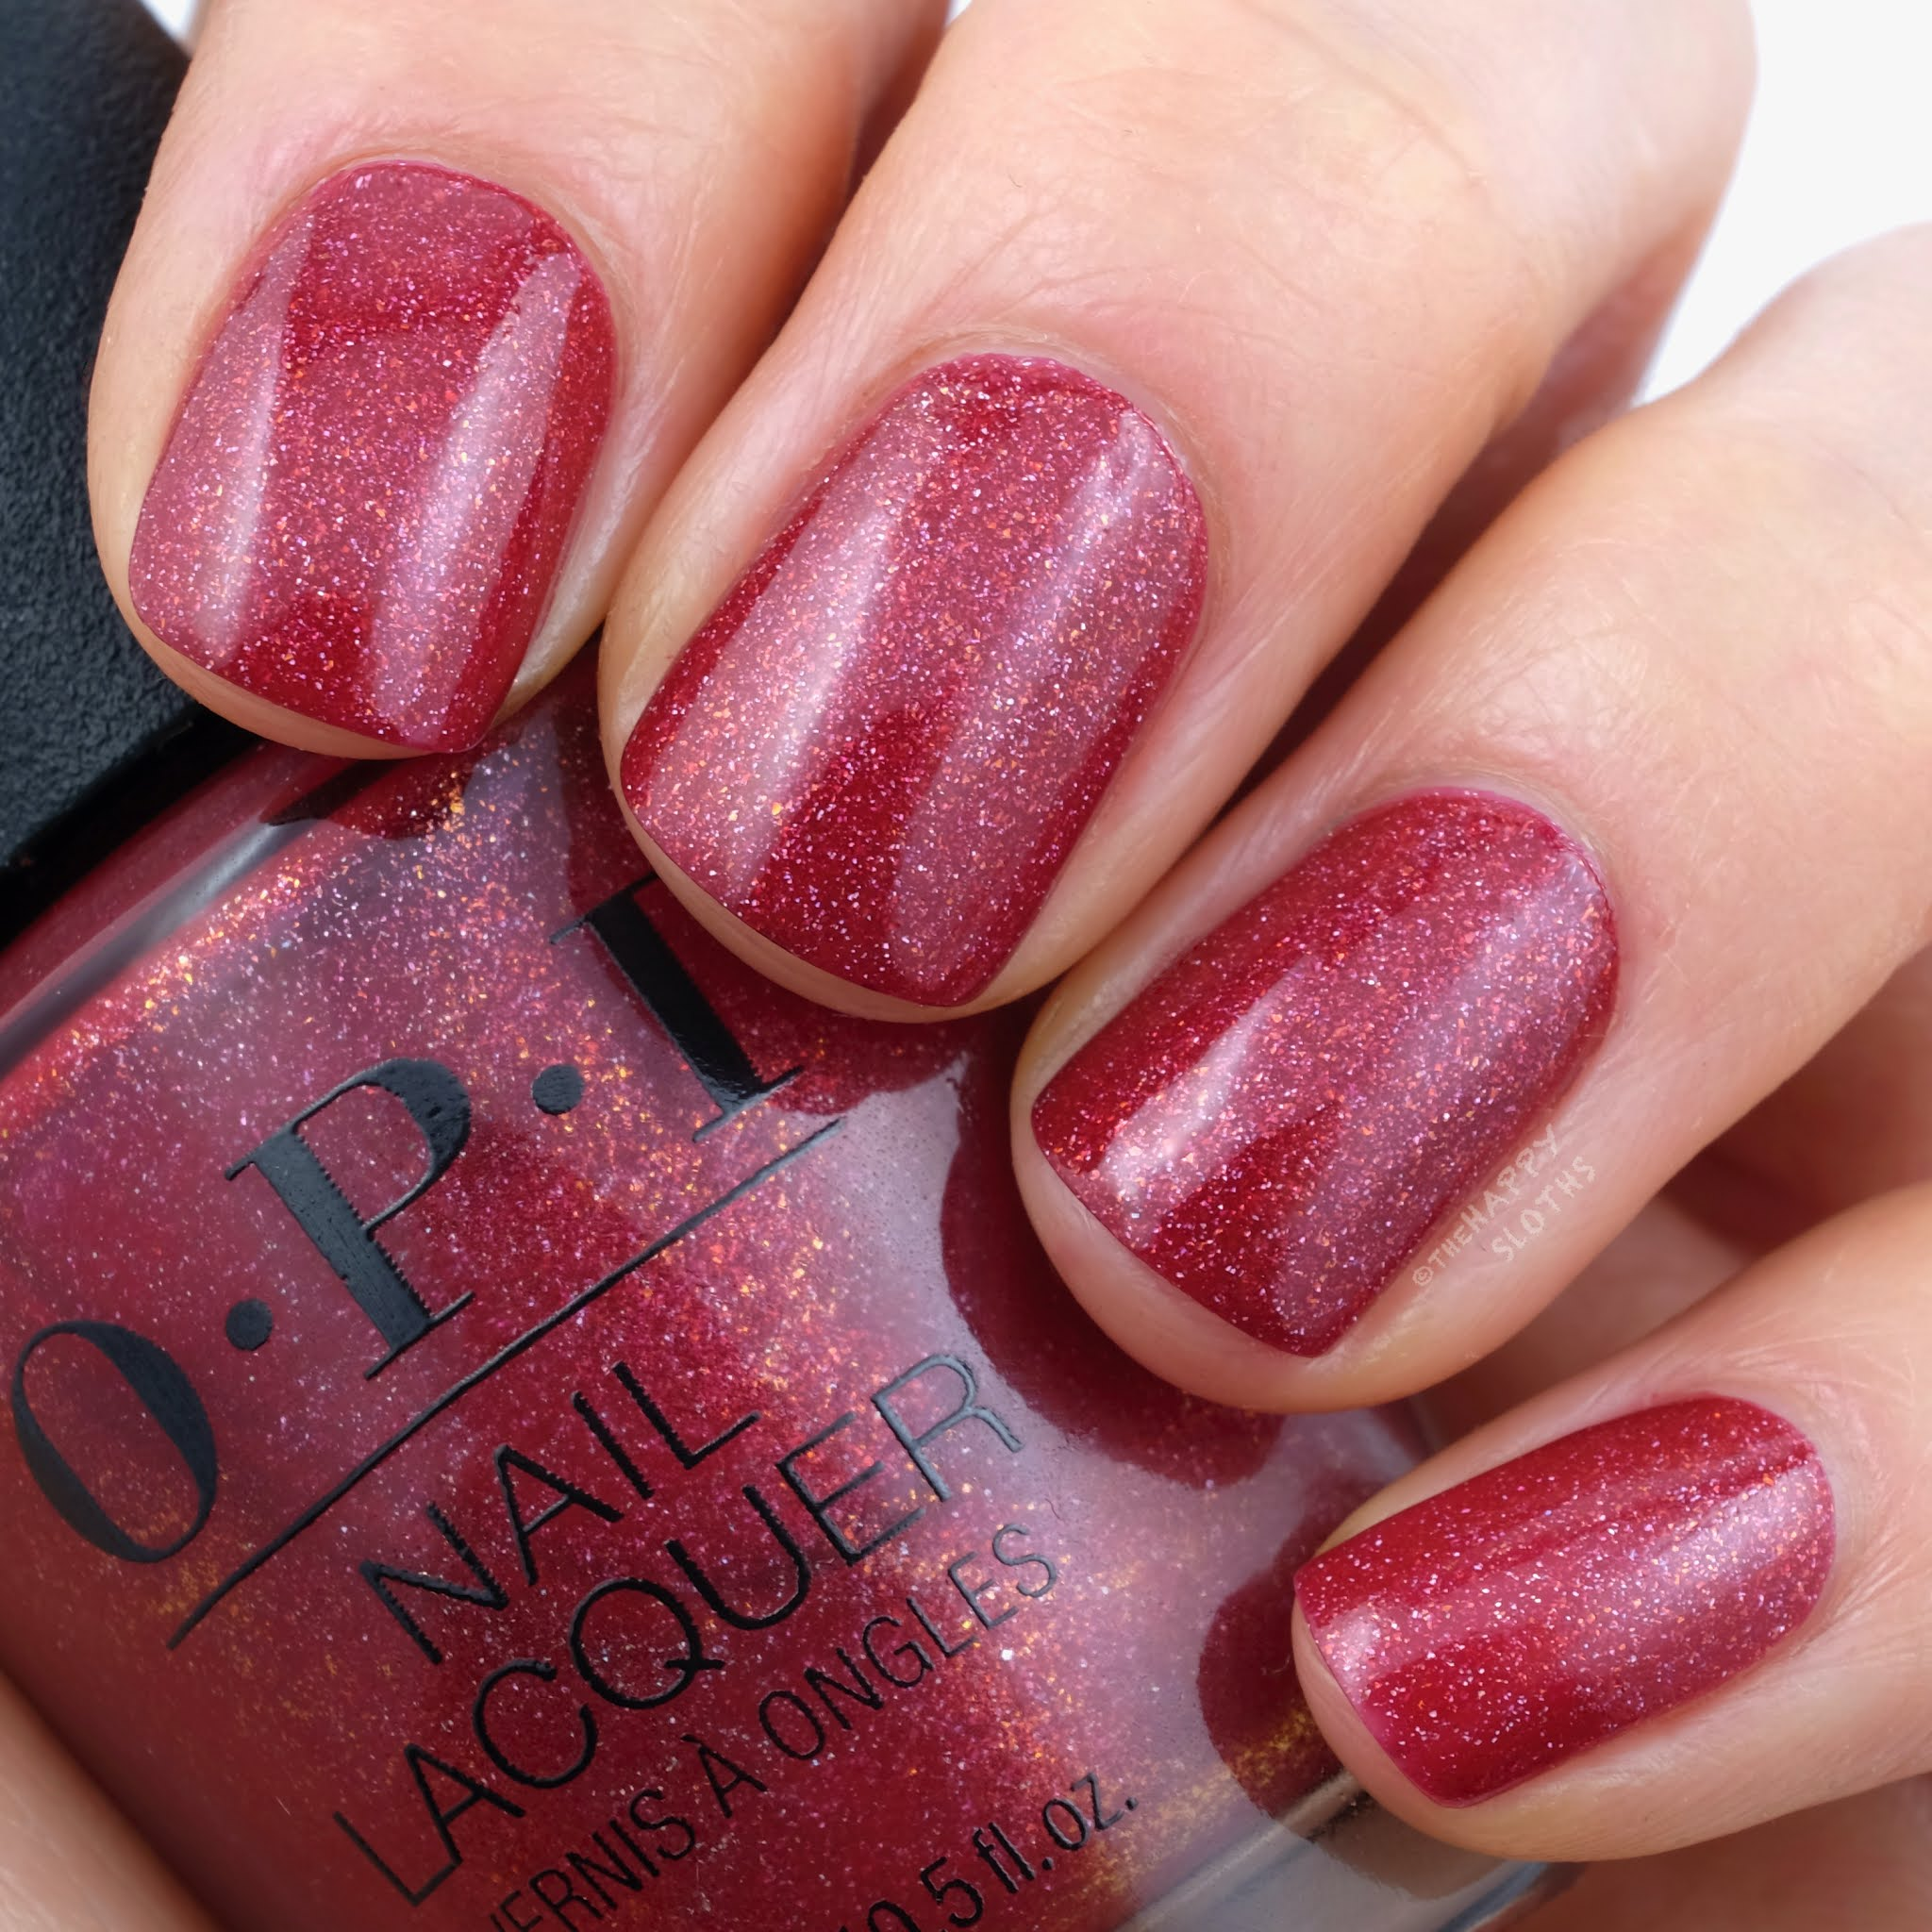 OPI | Spring 2021 Hollywood Collection | I'm Really An Actress: Review and Swatches